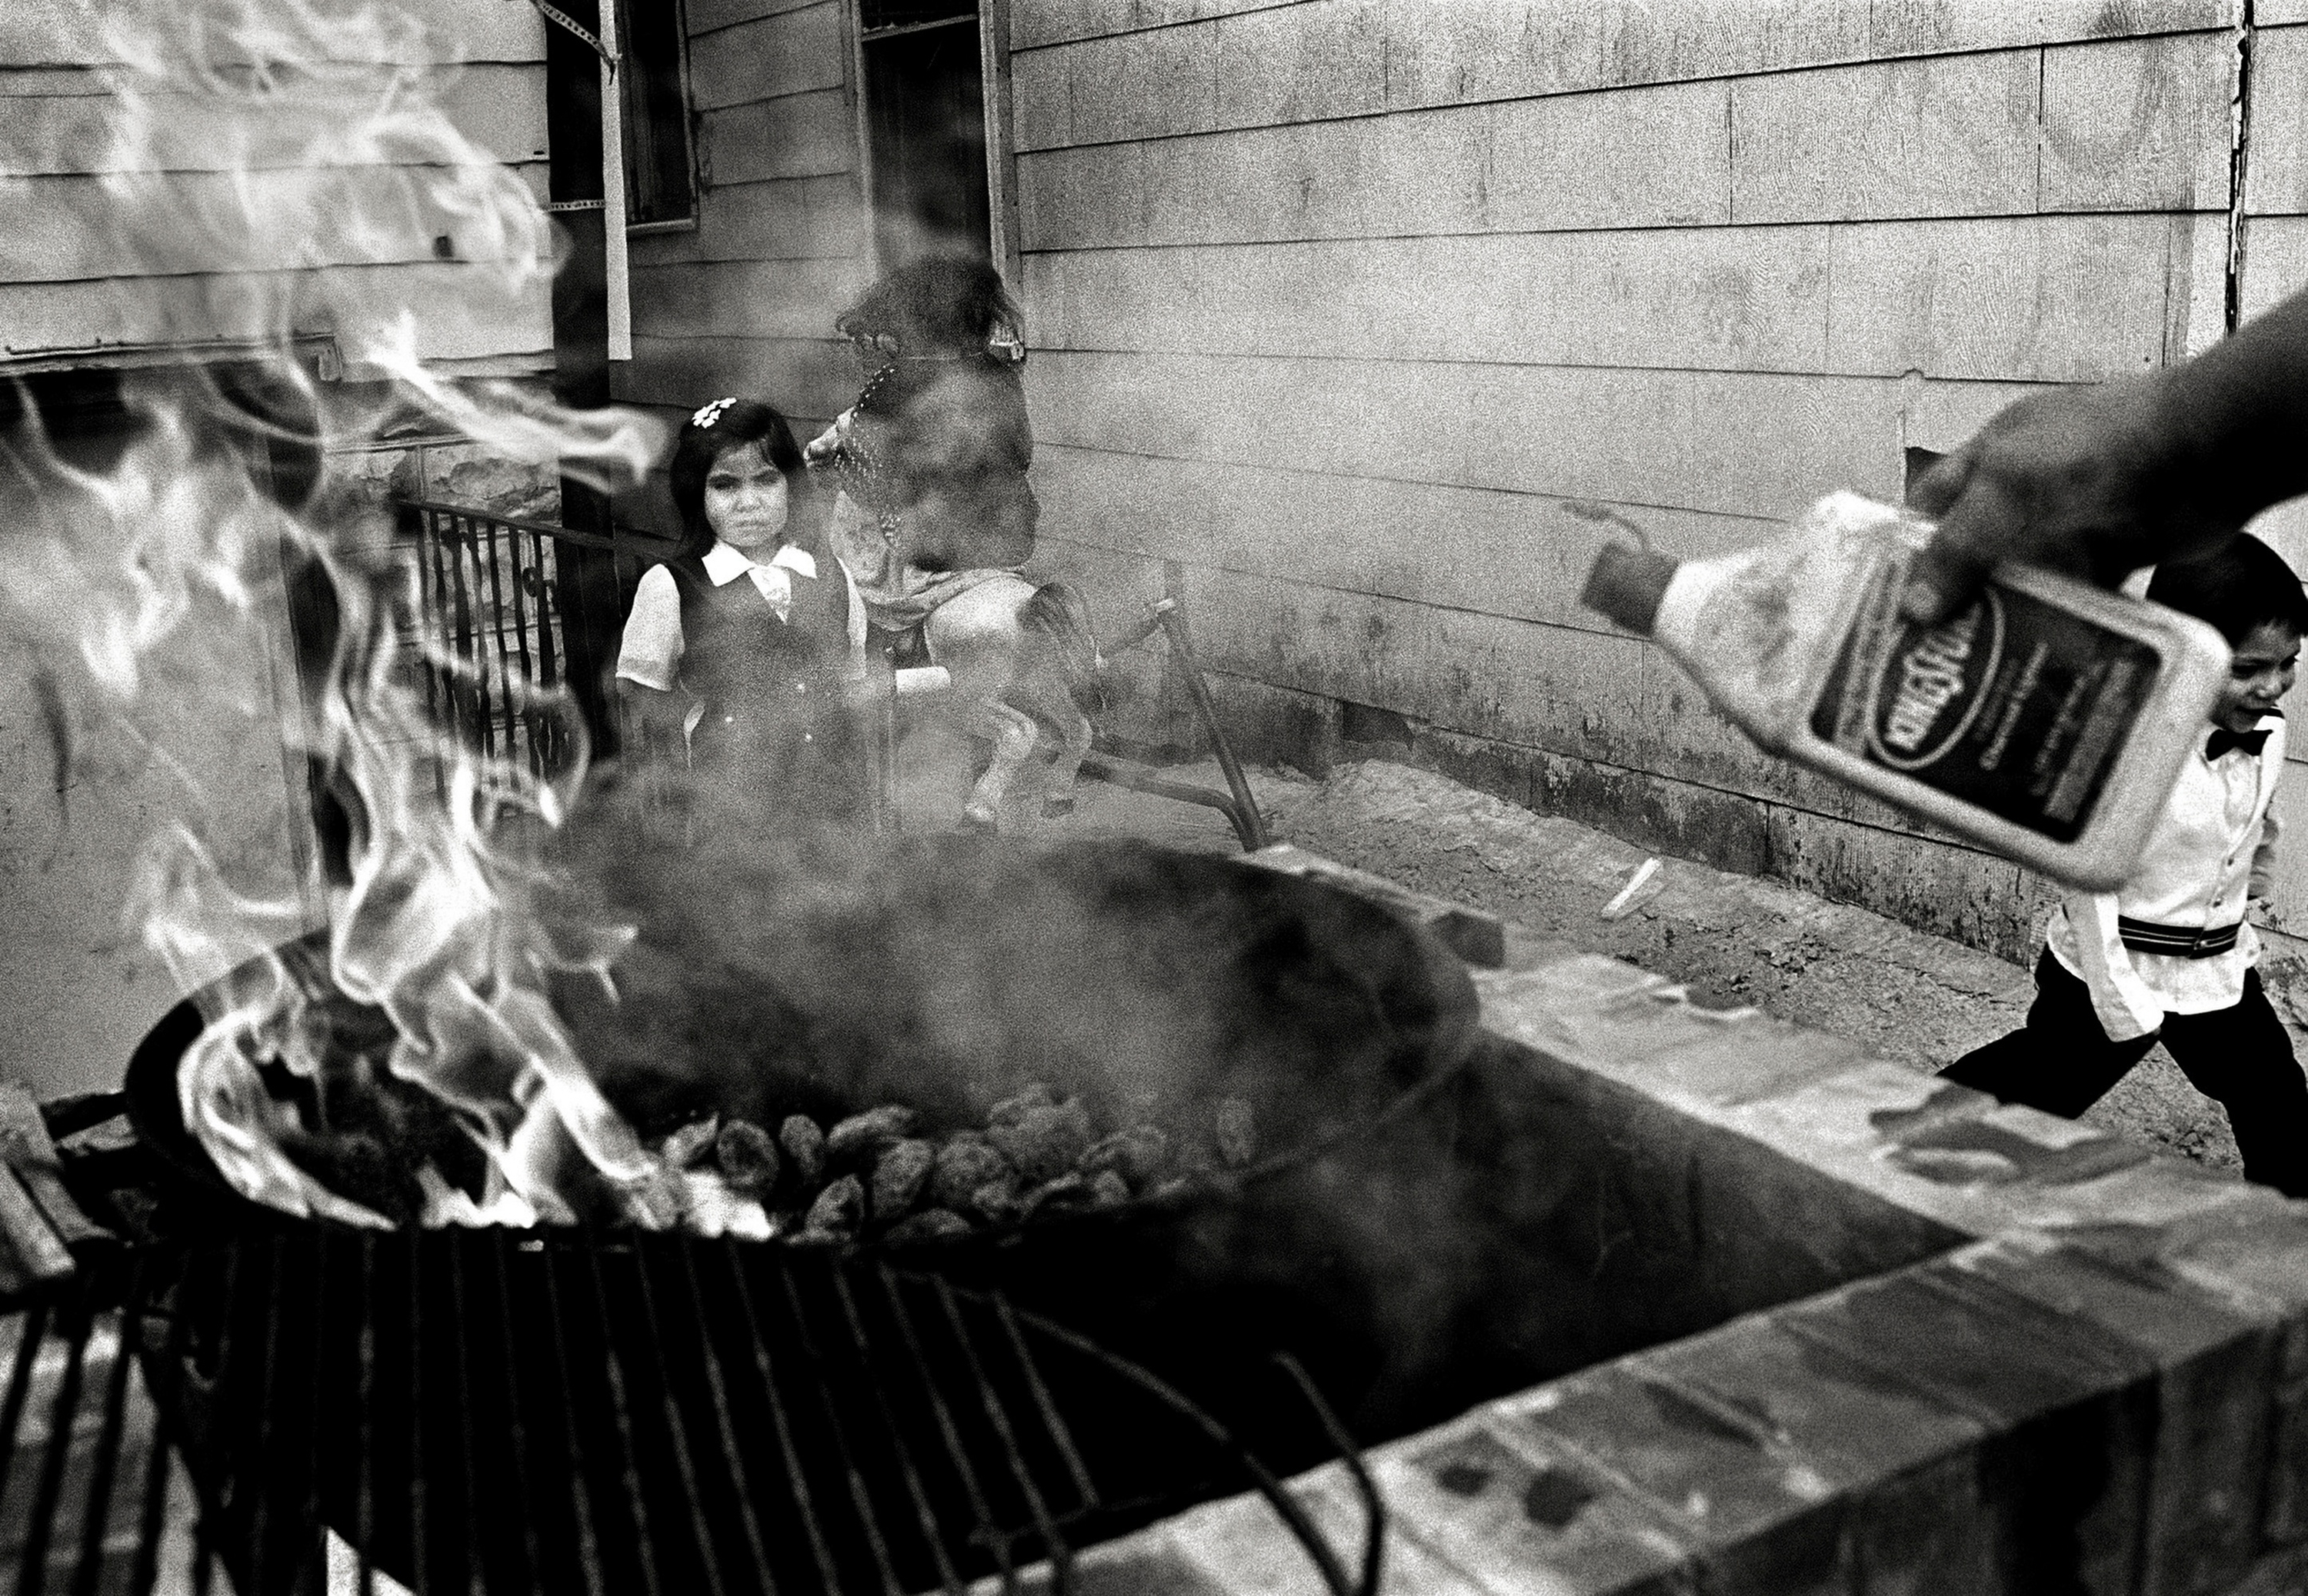 At the inauguration of the first Back of the Yards Worker Center, 4314 S. Hermitage Ave., the Latino Union of Chicago held a barbecue that cousins Rosa and Ruben Solis enjoyed.  The Solis family lives in the front of the house, while the worker center is located at the back.  The center was founded by the Latino Union to offer day laborers an alternative to the many temporary employment agencies that dot the city and offer their employees minimum wage and no benefits.  The worker center has since closed, but the Latino Union still advocates for Latino immigrants on Chicago's South Side.